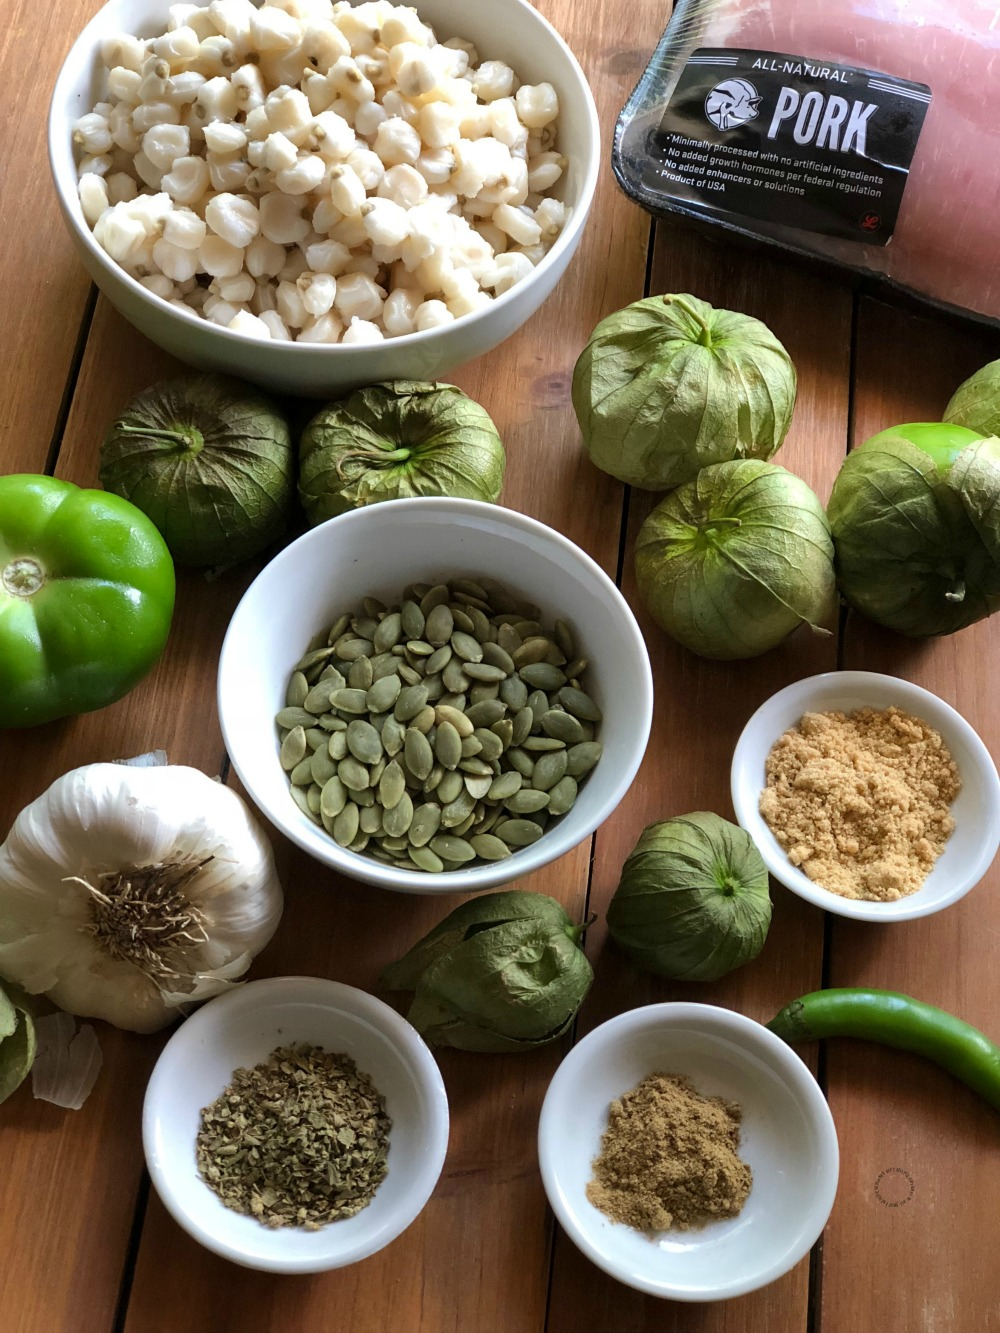 Ingredients for the Instant Pot Green Pork Pozole Recipe